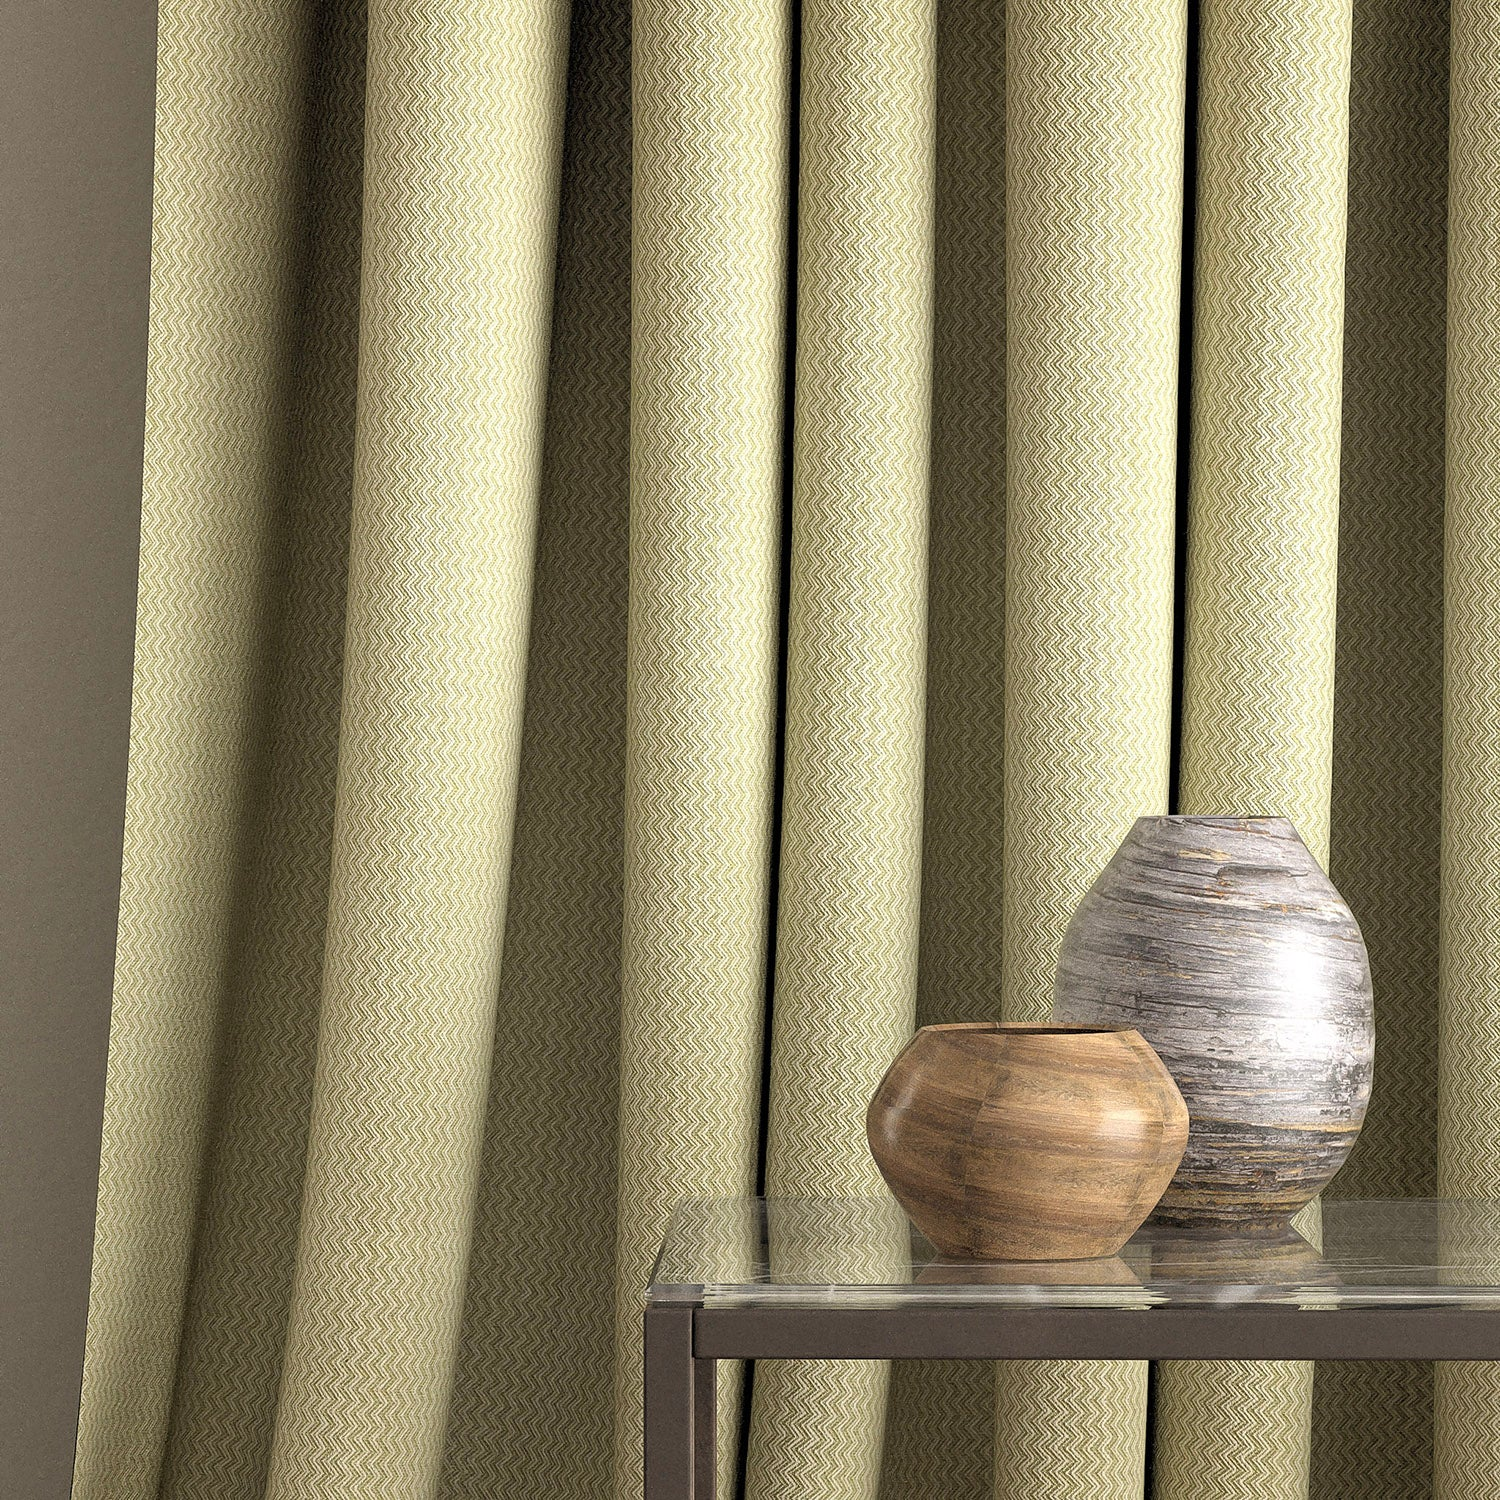 Curtain in a green fabric with chevron weave design and stain resistant finish